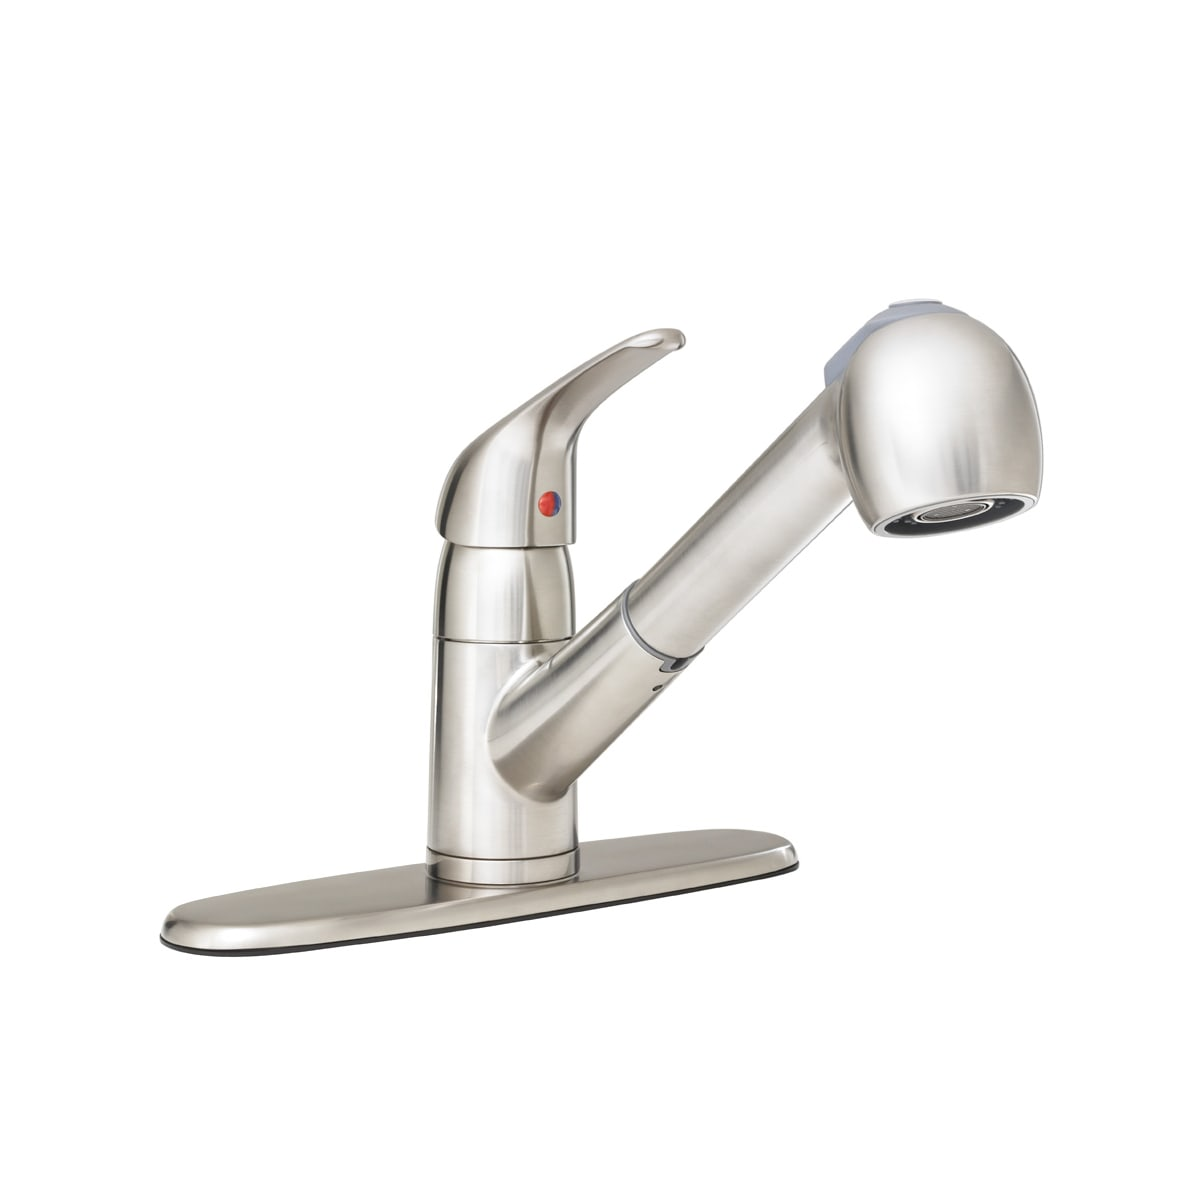 Proflo Pfxc5150bn Brushed Nickel Pullout Spray Kitchen Faucet With Multi Flow Faucet Head Optional Escutcheon Included Faucet Com